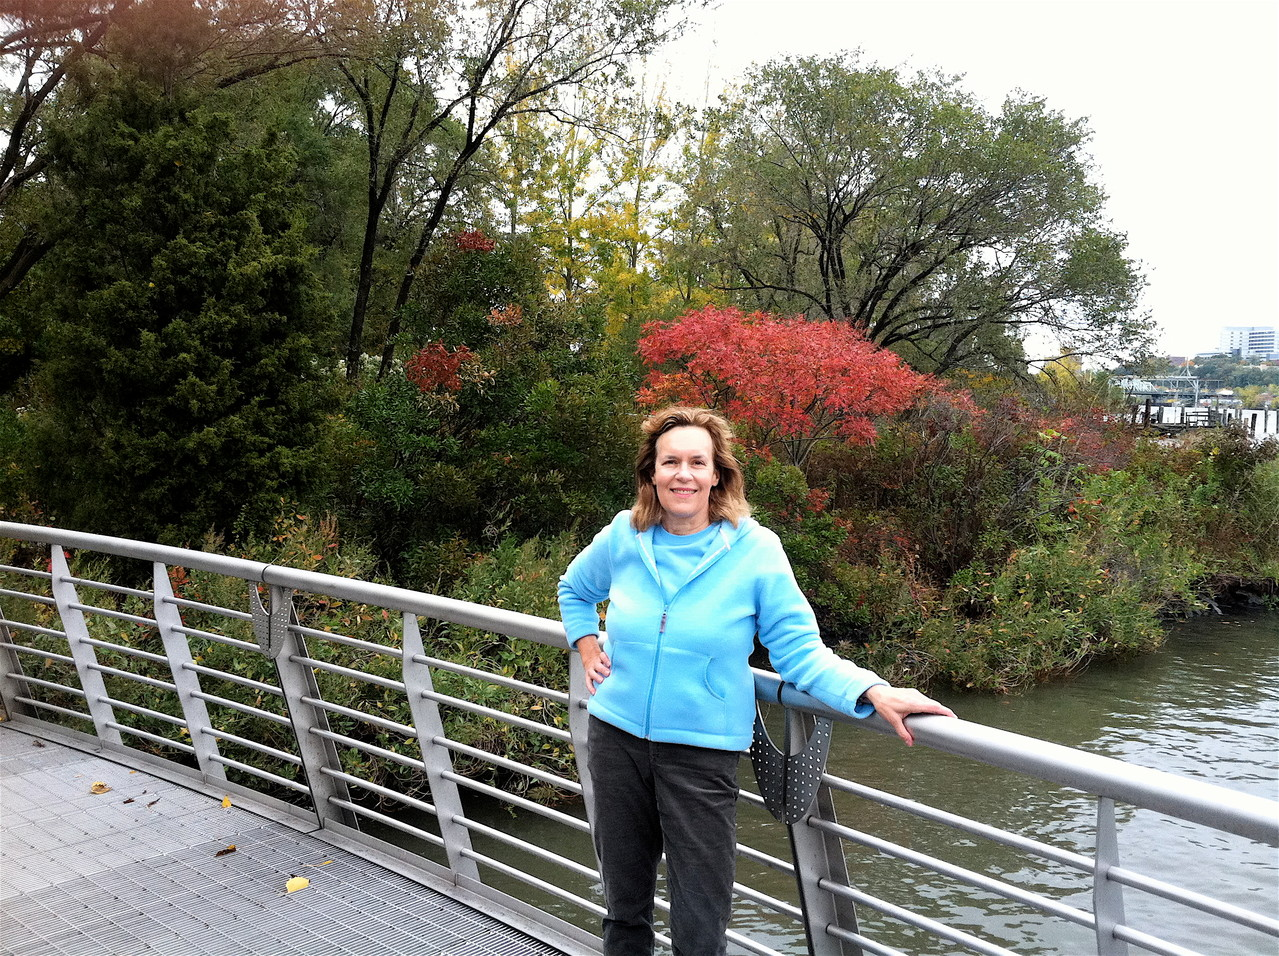 Lorraine along the Harlem River, 10-28-12